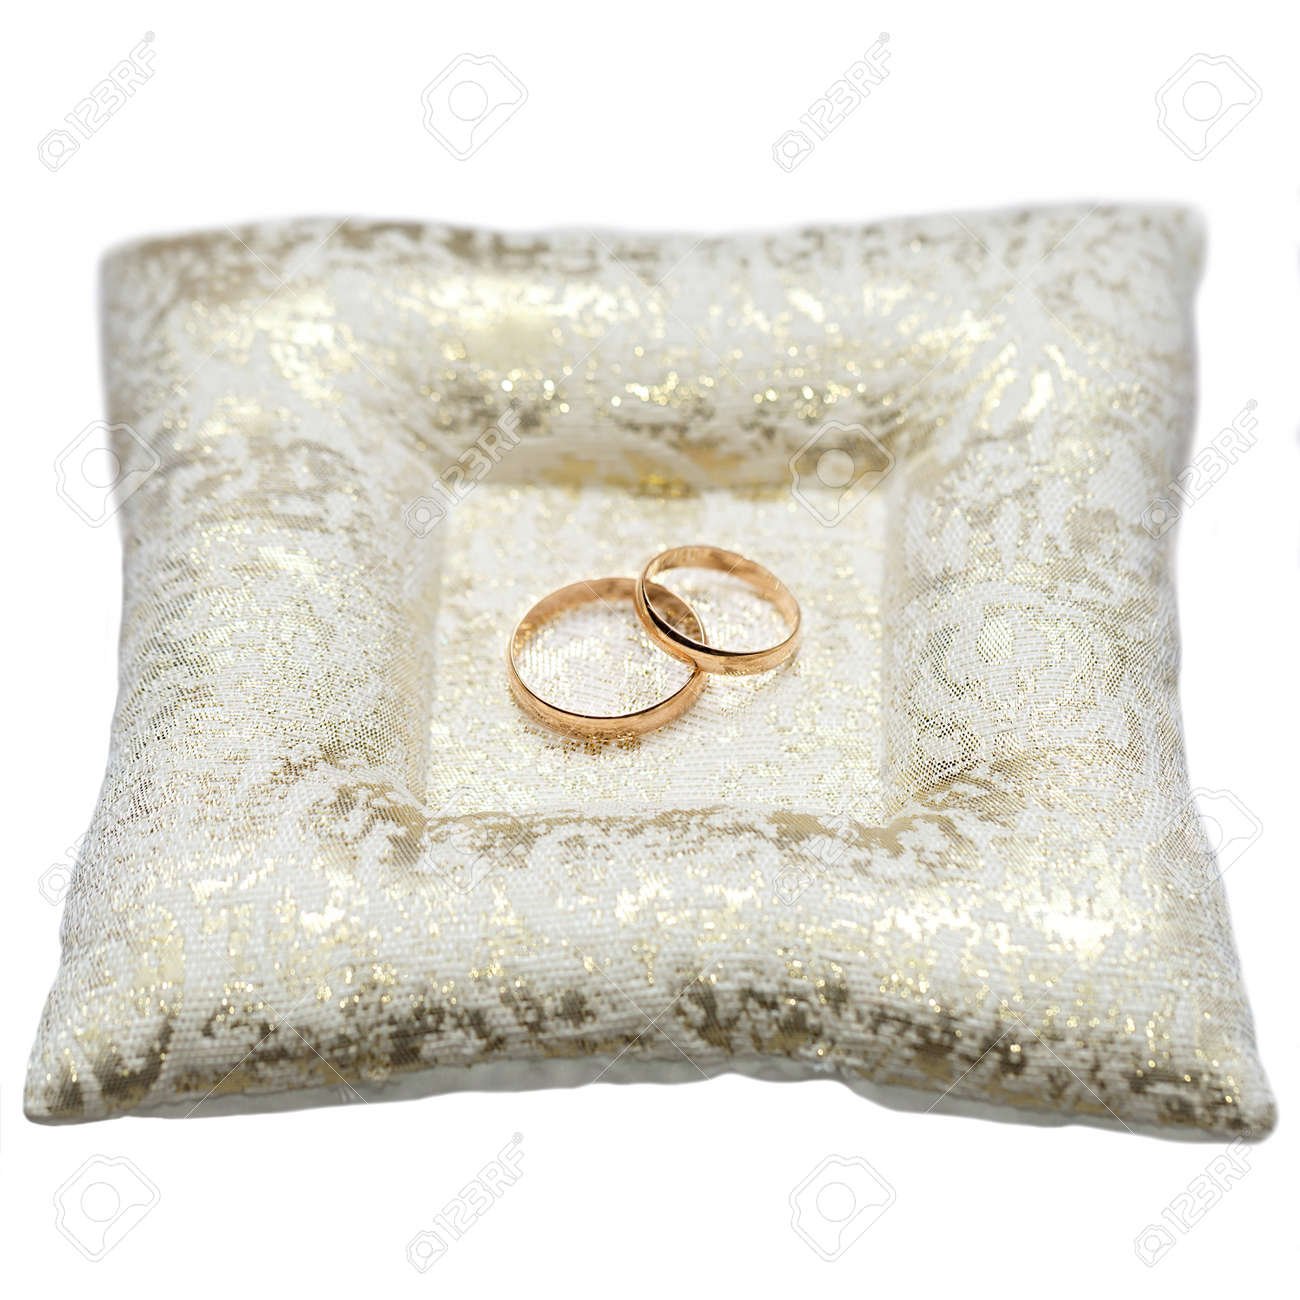 Wedding Gold Rings Bride And Groom On Decorative Pillow Isolated